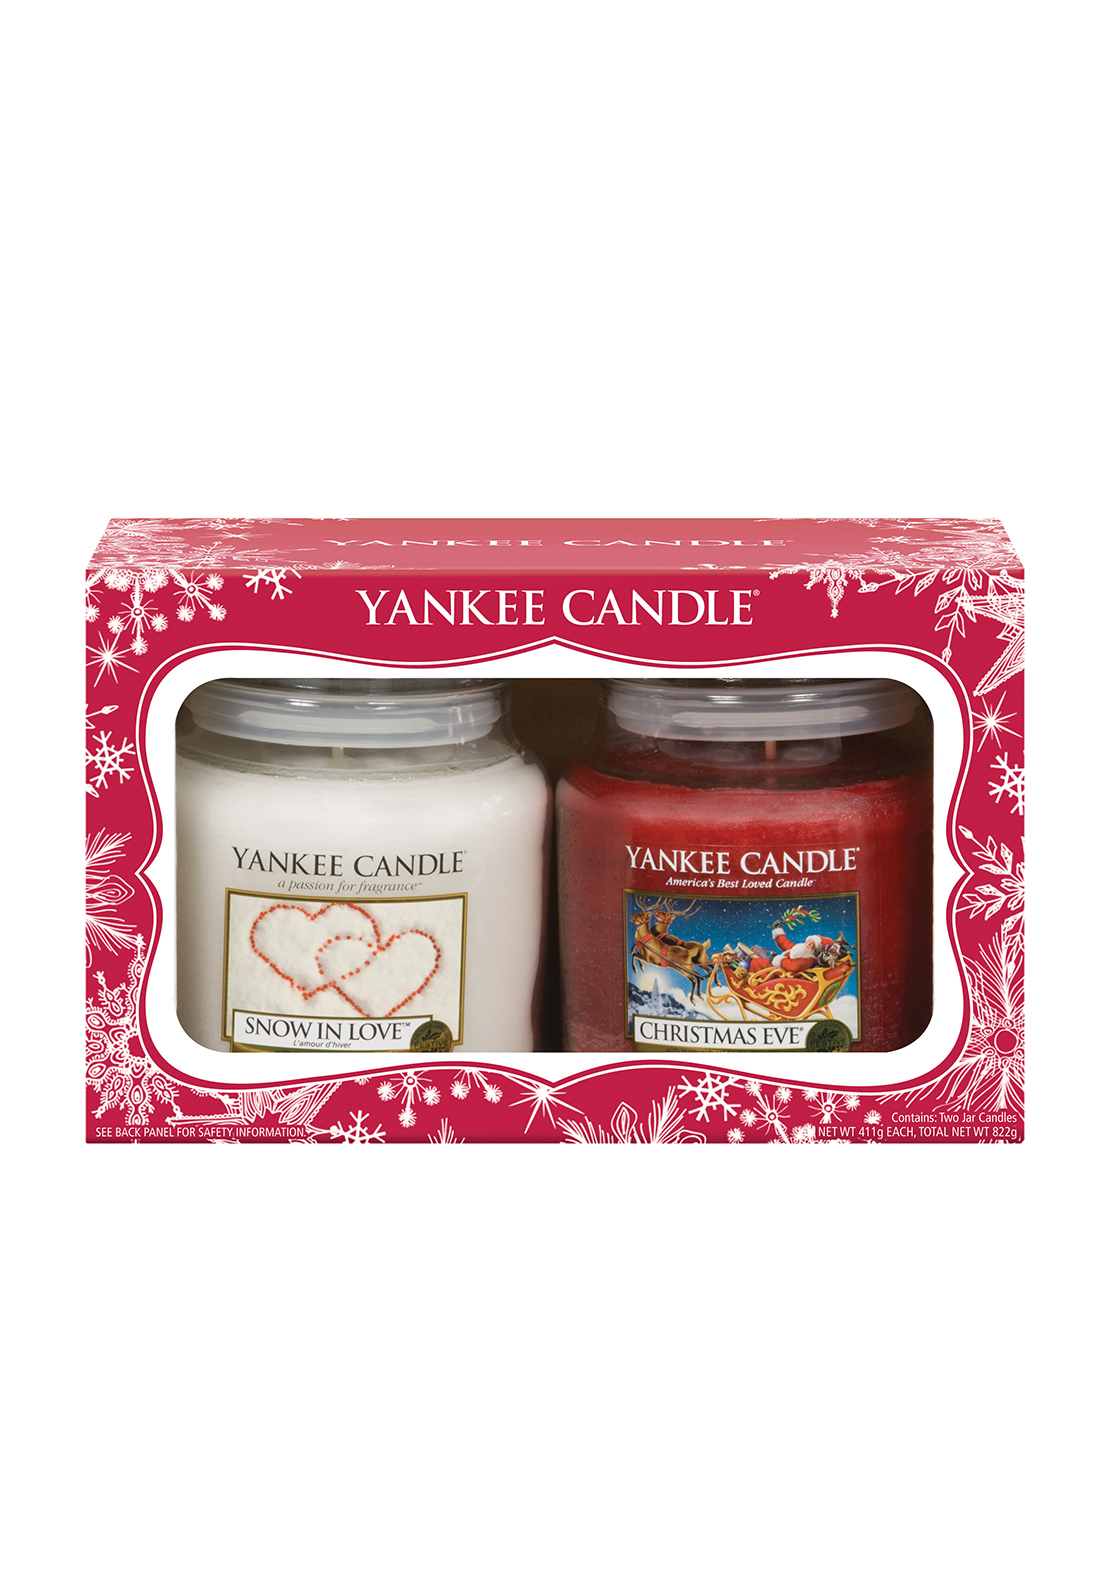 Yankee Candle Christmas, Snow in Love and Christmas Eve Value Gift Set